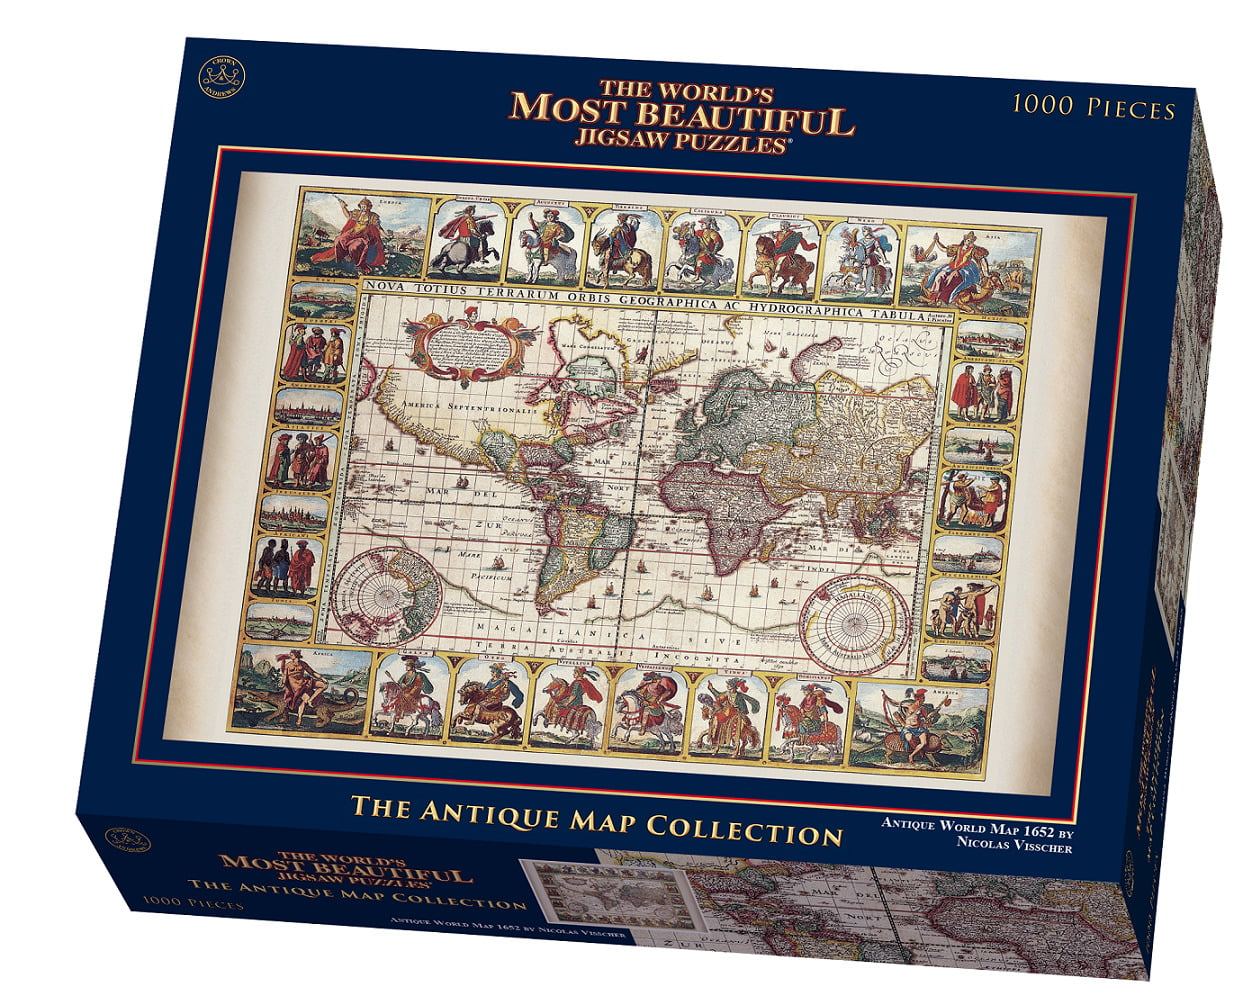 1000 piece puzzle antique world map 1652 by nicolas visscher antique world map 1000 piece puzzle gumiabroncs Choice Image